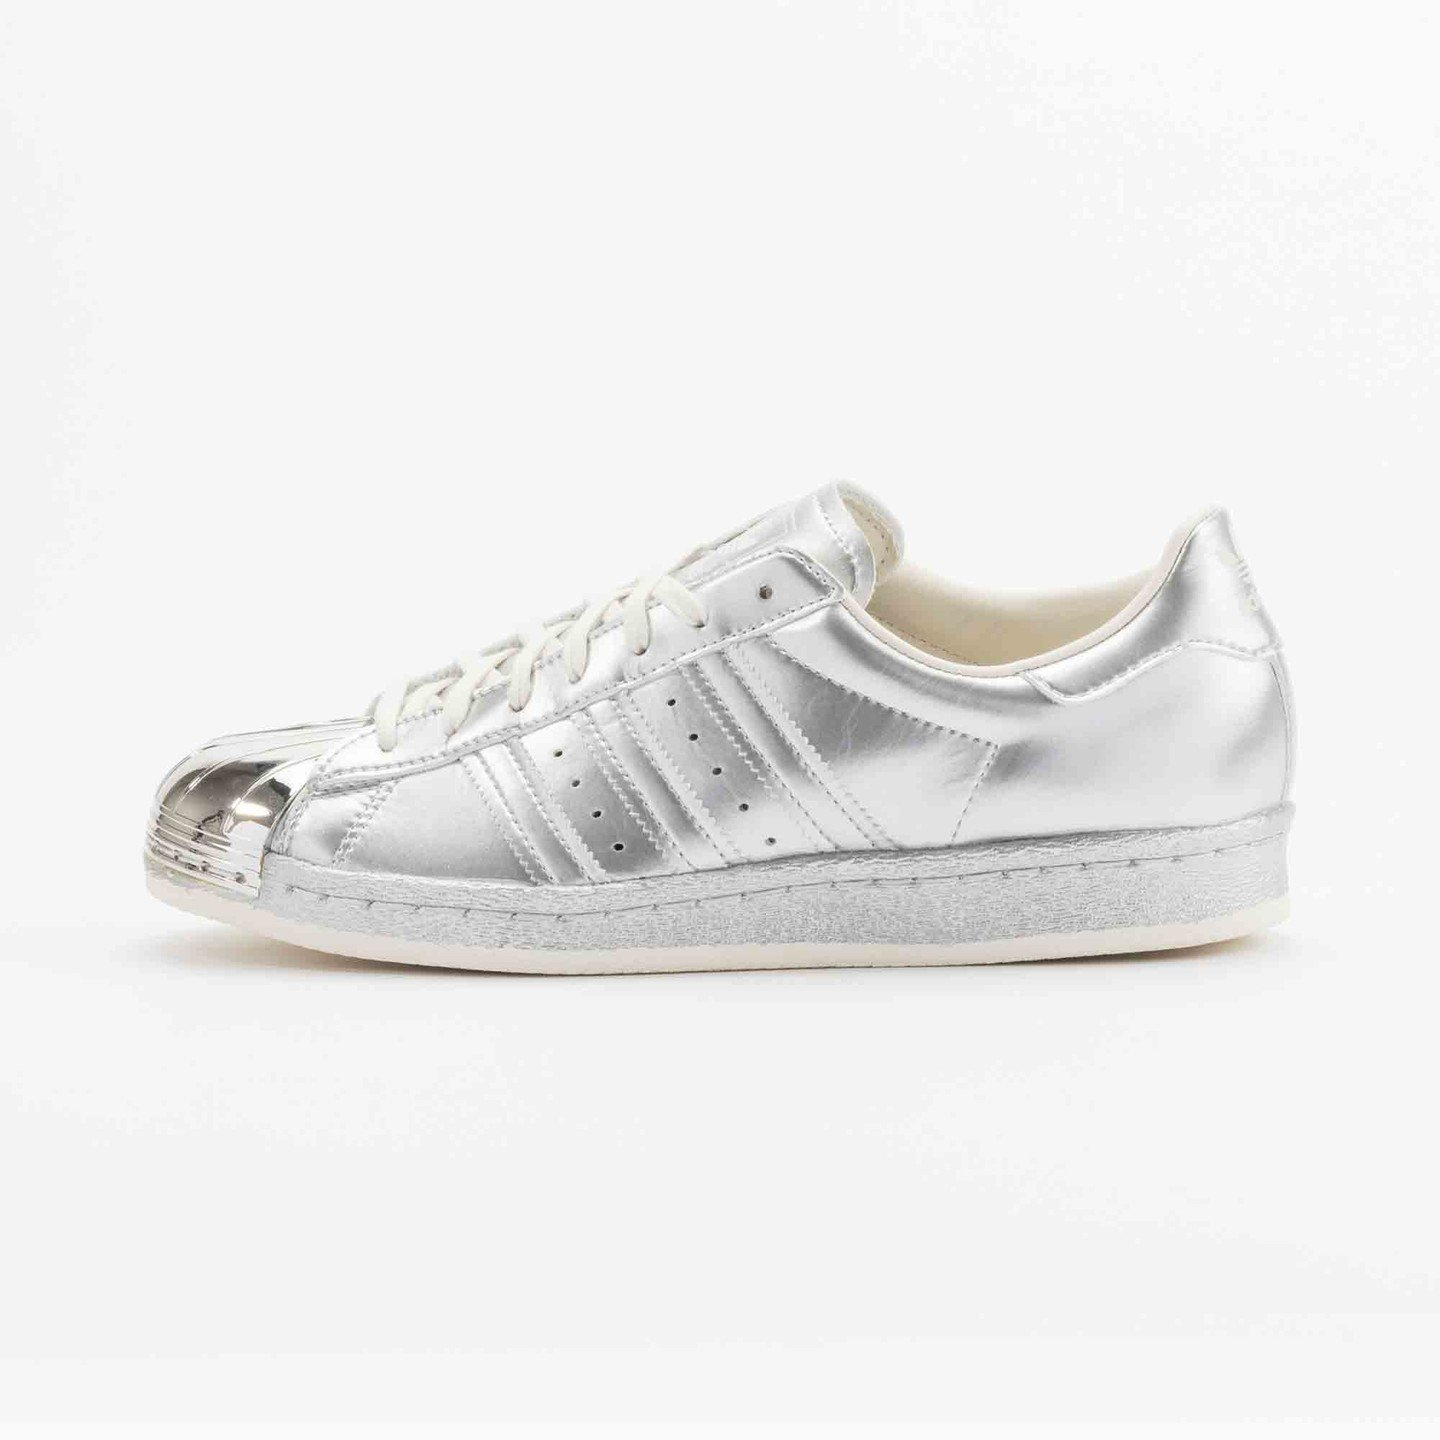 Adidas Superstar 80s Metallic Pack Silver Metallic S82741-38.66